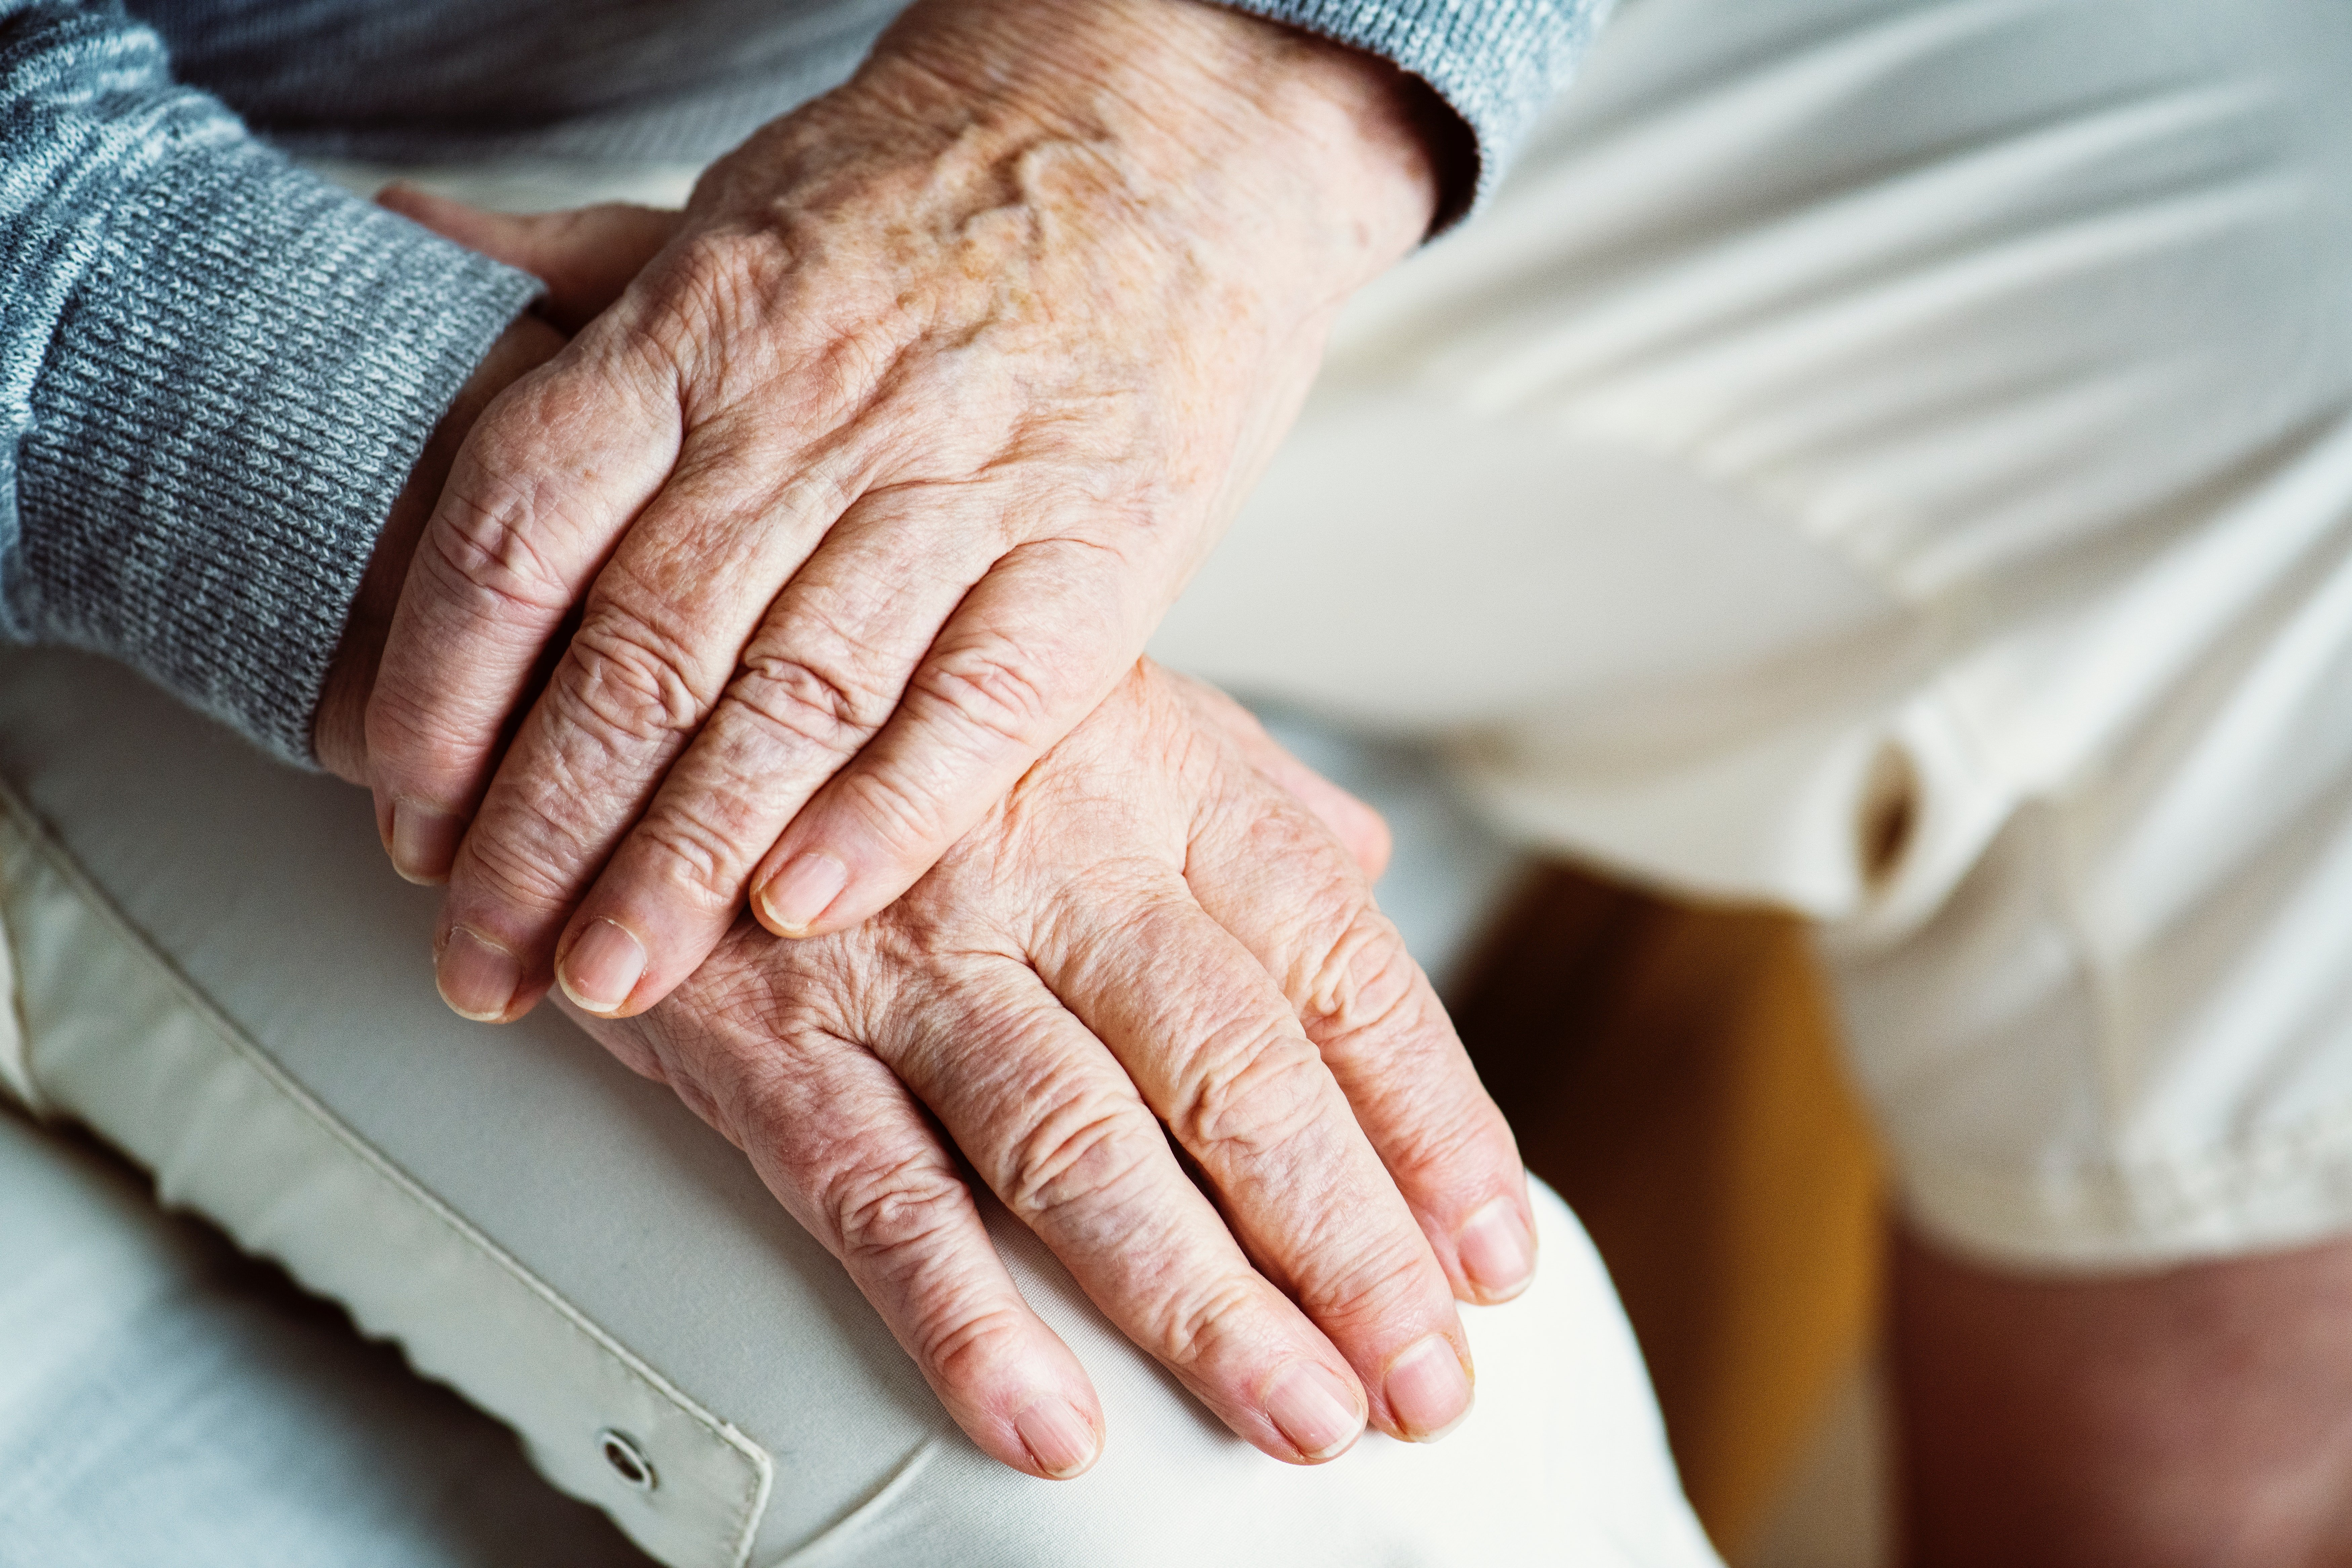 An old man places his one hand over the other. | Source: Pexels